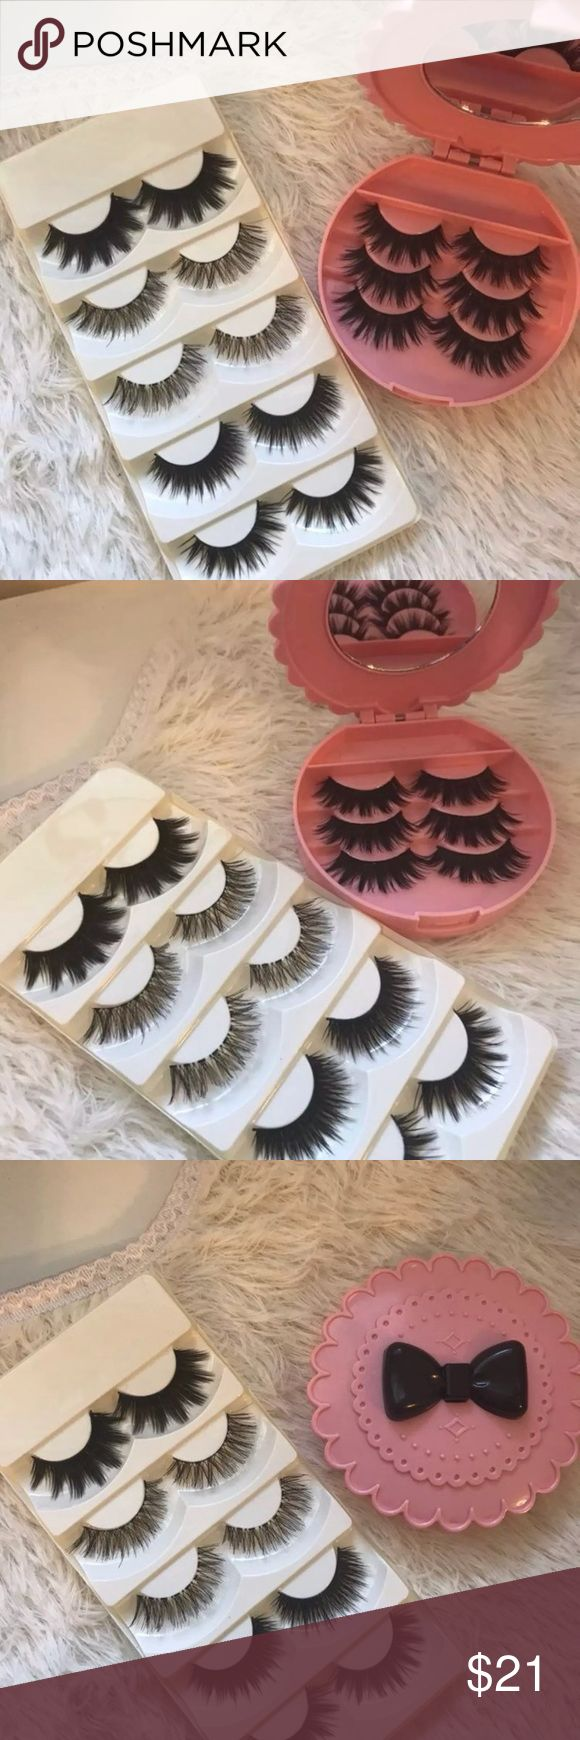 8 Eyelashes + Eyelash Case with a mirror All brand new include  ⭐️8 Pairs of Eyelashes  ⭐️Eyelash Case w Mirror   ✅Super Deal⭐️✨  +$2 Add on eyelash Applicator  +$3 Add on eyelash glue Please message me if you want to add them.    # tags Iconic, mink, red cherry eyelashes, house of lashes, doll, kawaii, case, full, natural,  Koko, Ardell, wispies, Demi , makeup, Mink lashes, wispy, ICONIC lashes  Ship within 24 hours ✅ Makeup False Eyelashes